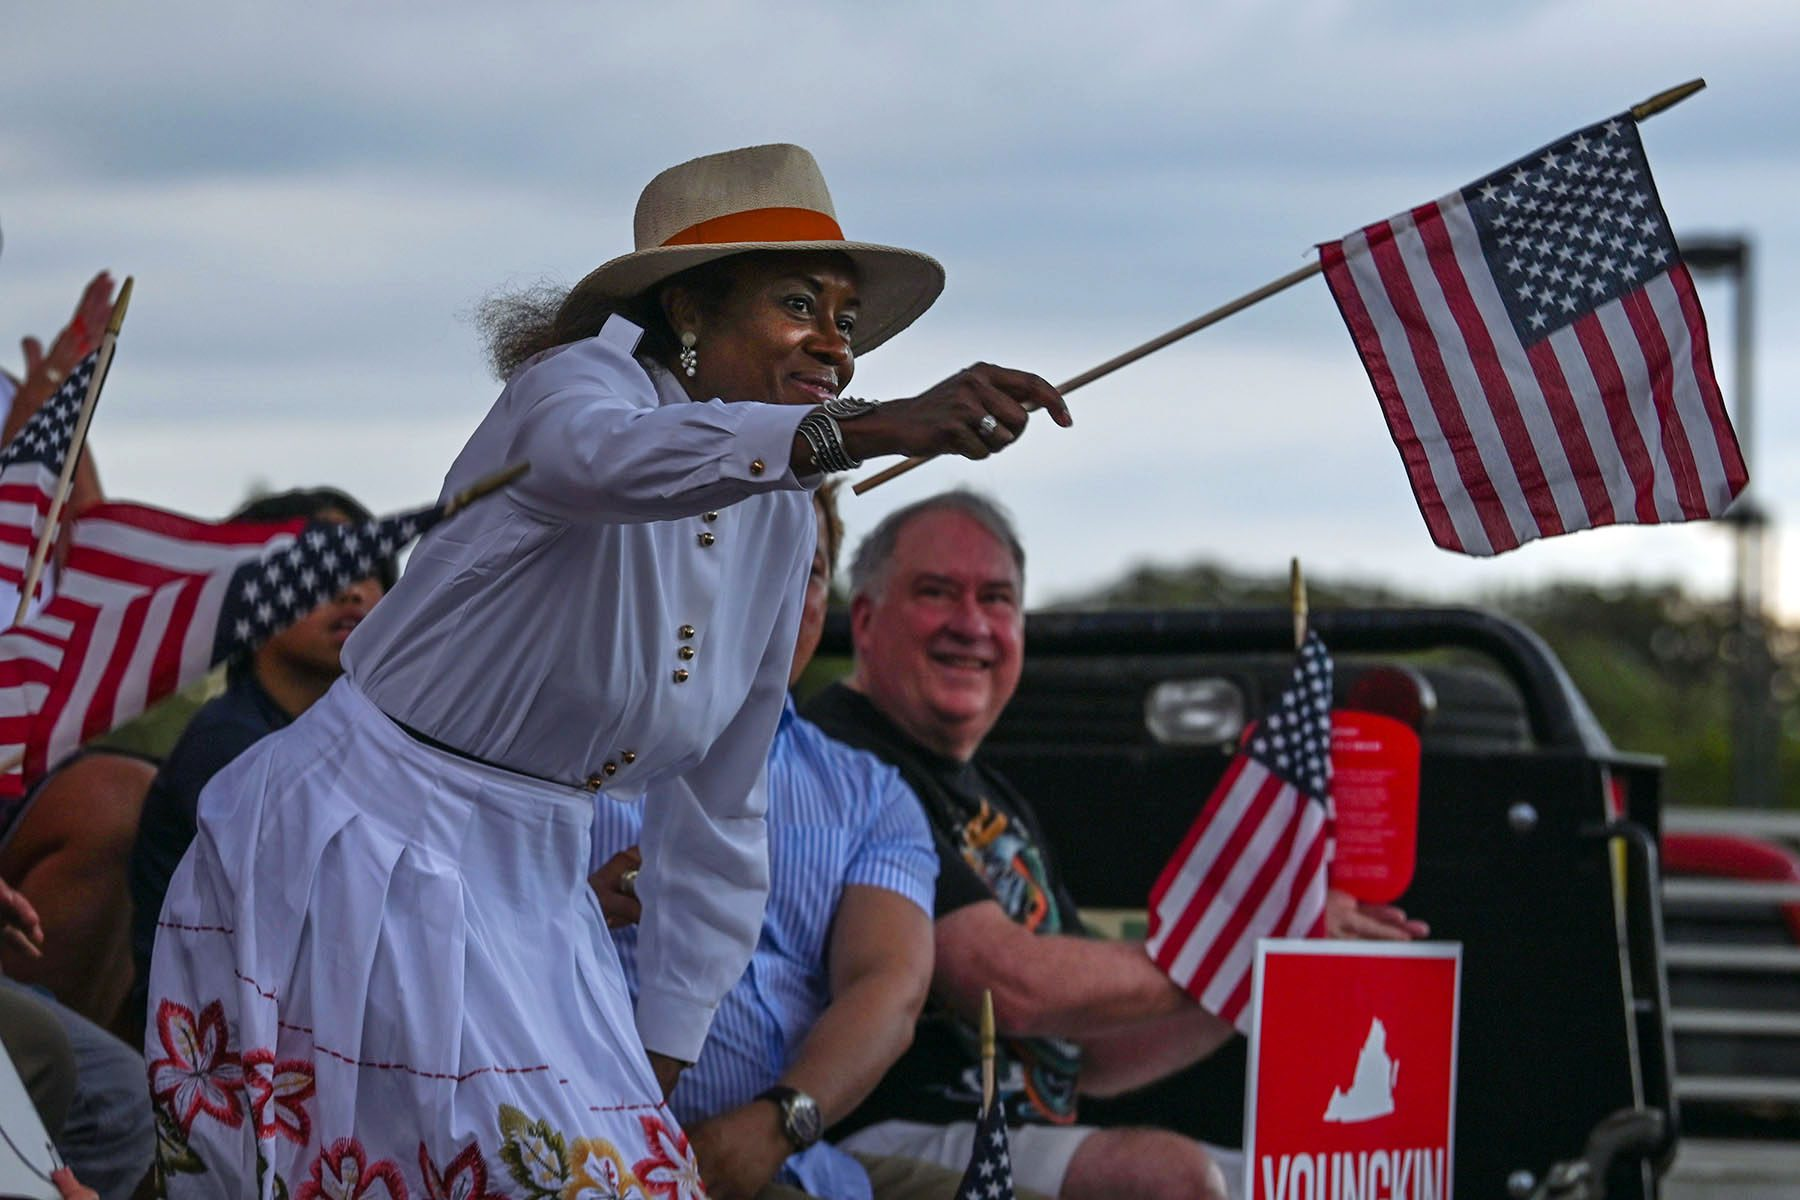 Winsome Sears smiles and waves an American flag at an event.